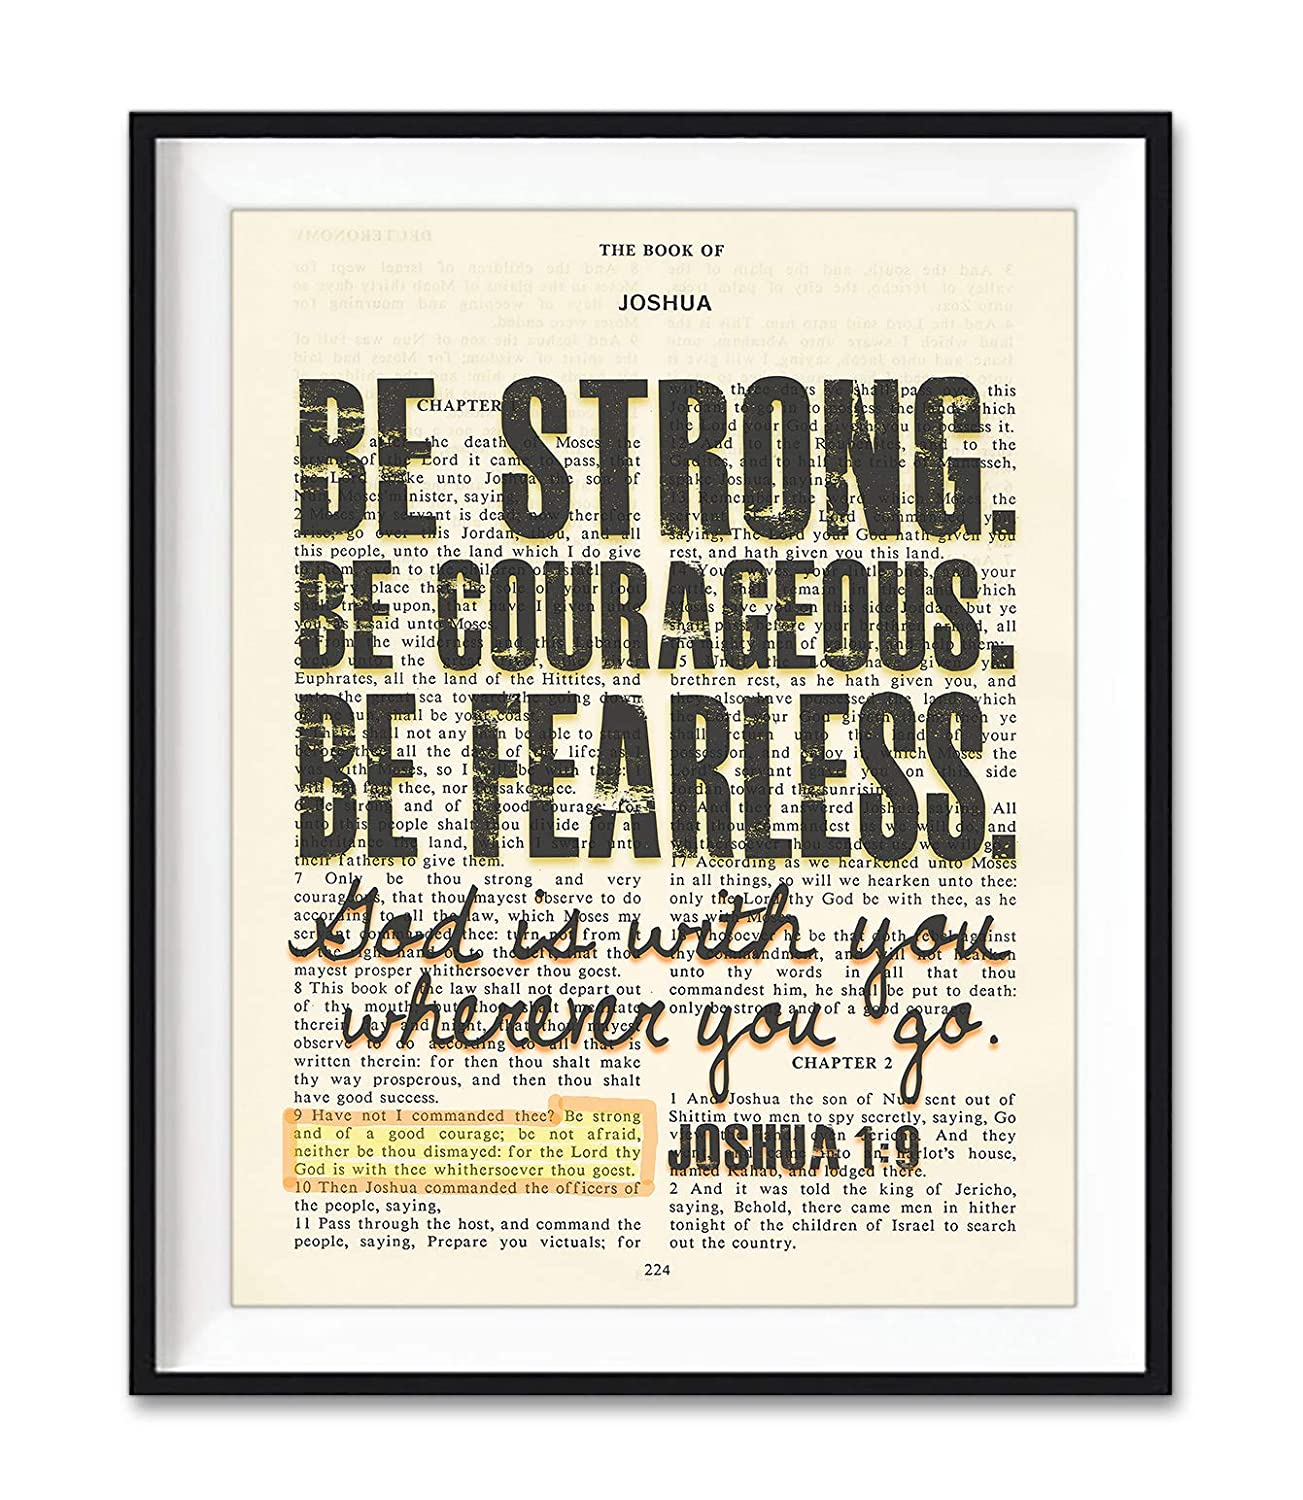 Be Strong. Be Courageous. Be Fearless. Joshua 1:9 Christian Unframed Reproduction Art Print, Vintage Bible Verse Scripture Wall and Home Decor Poster, Inspirational Gift, 5x7 inches